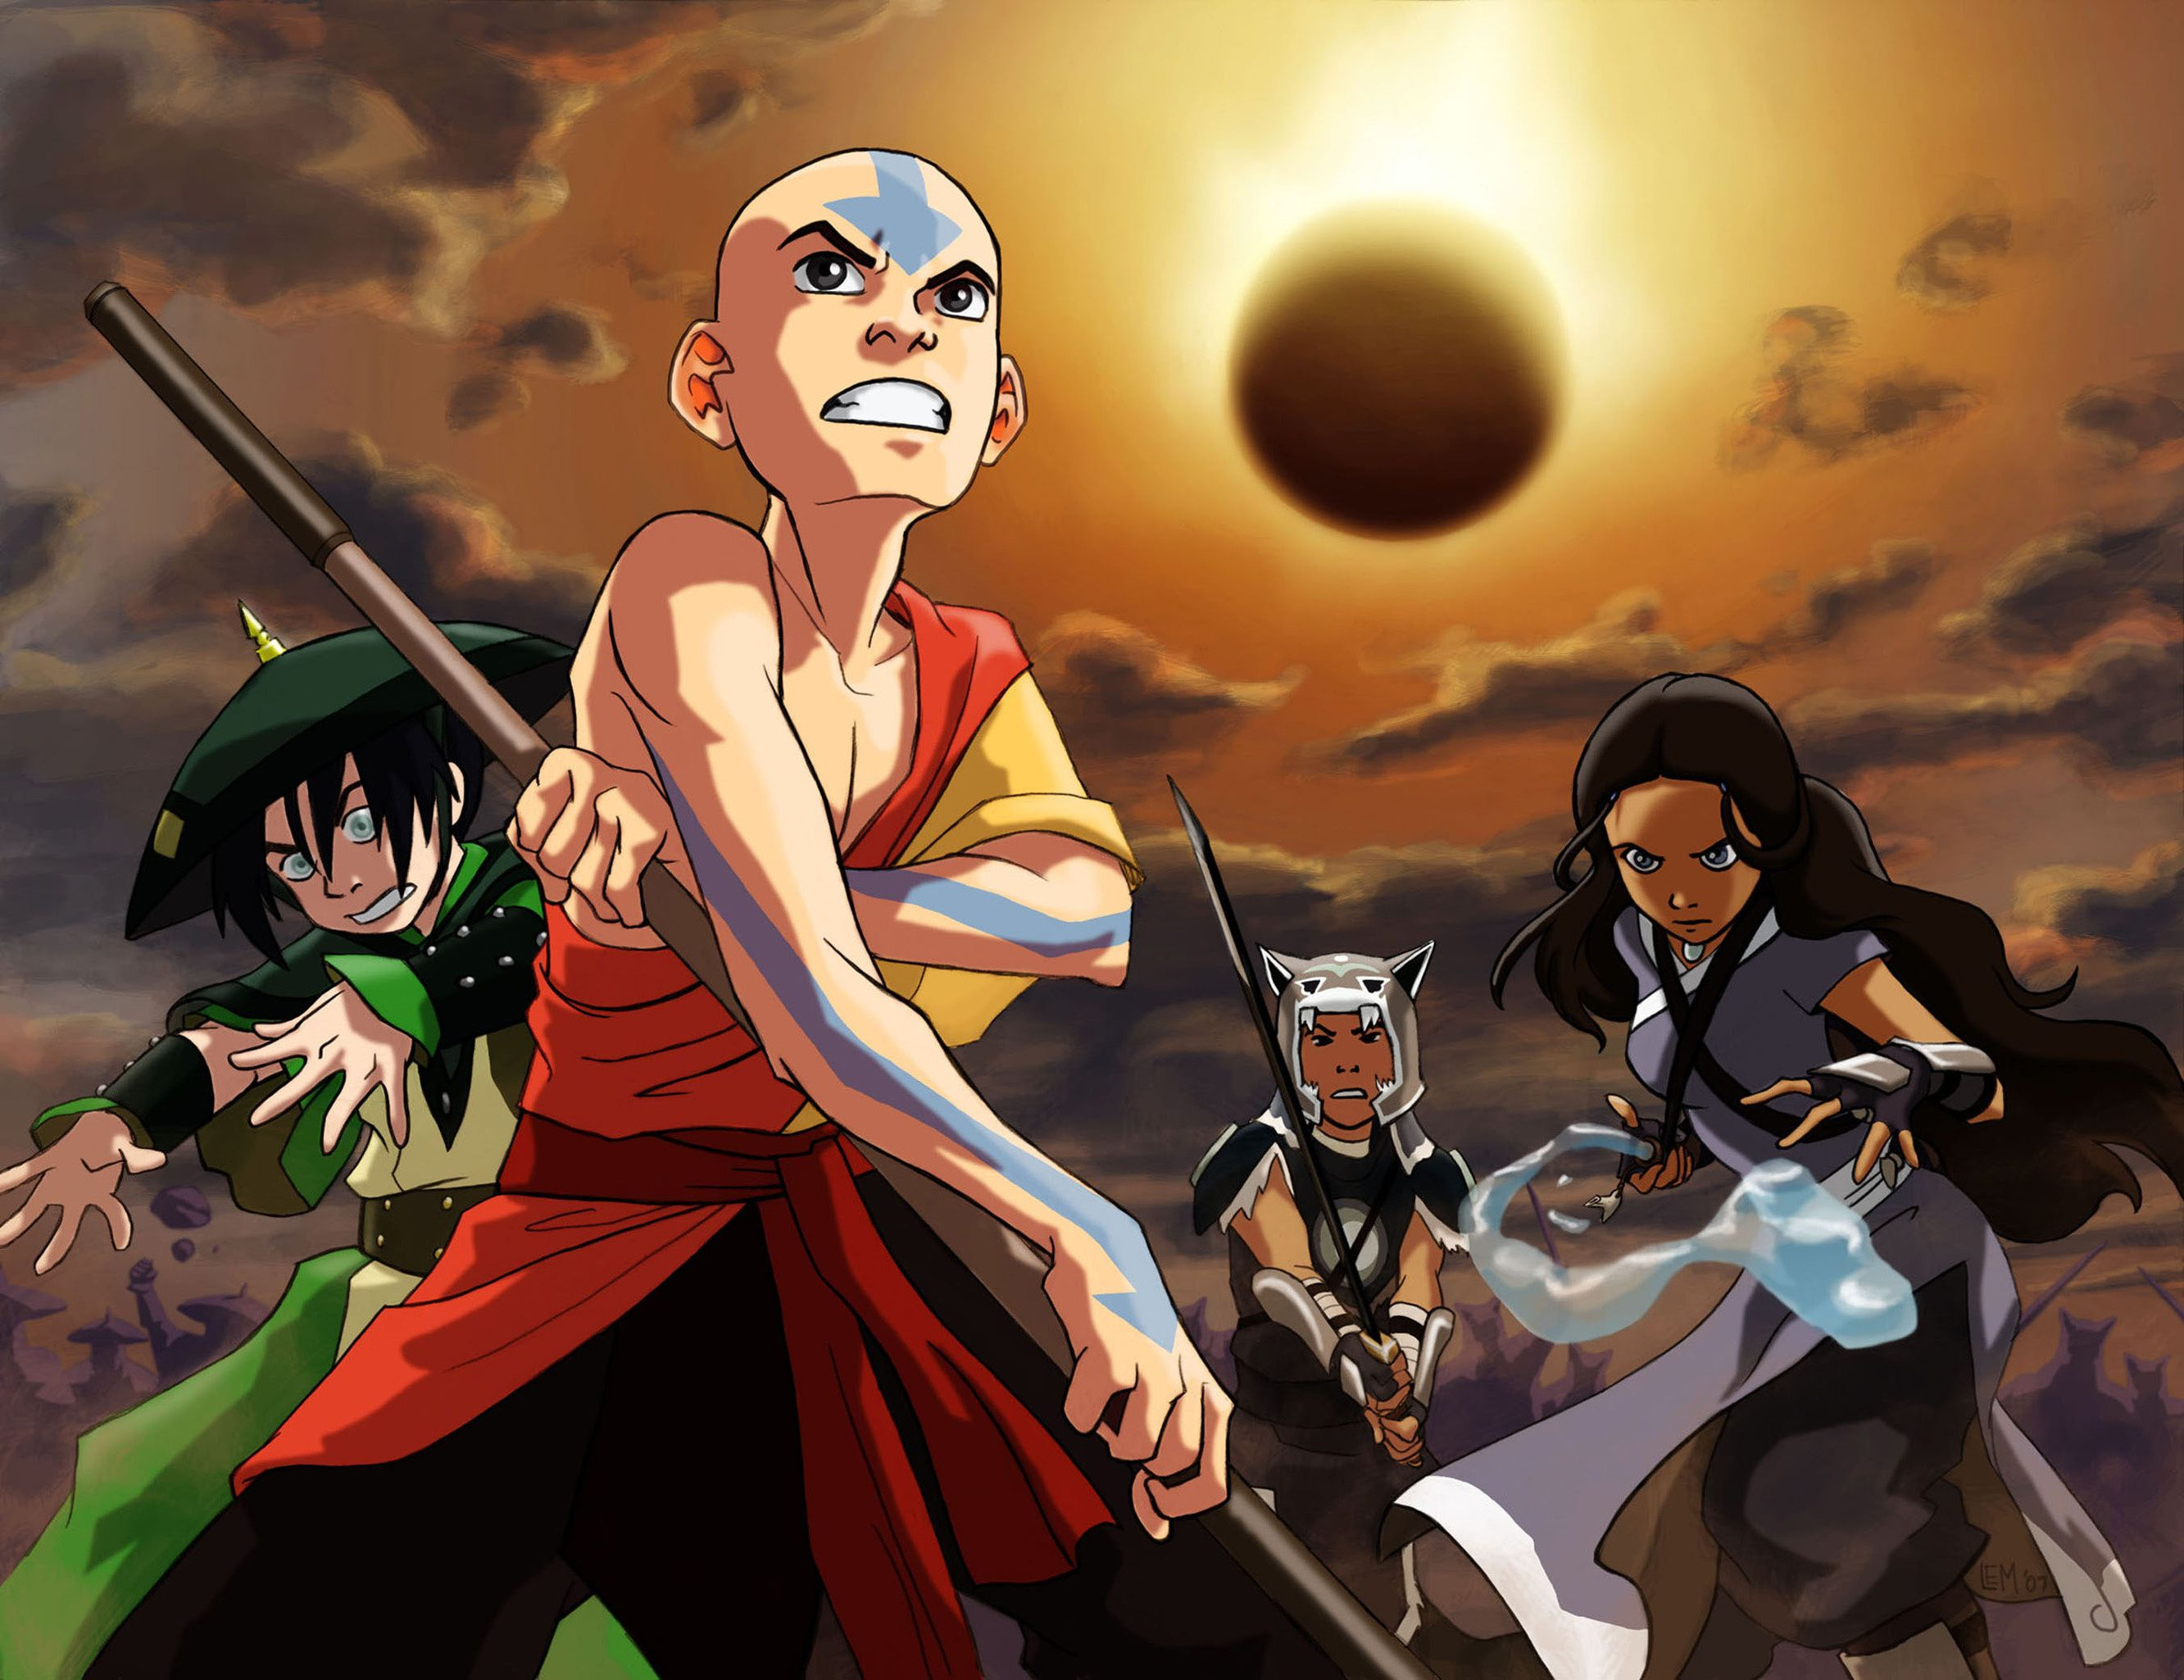 Exciting Avatar The Last Airbender Wallpapers